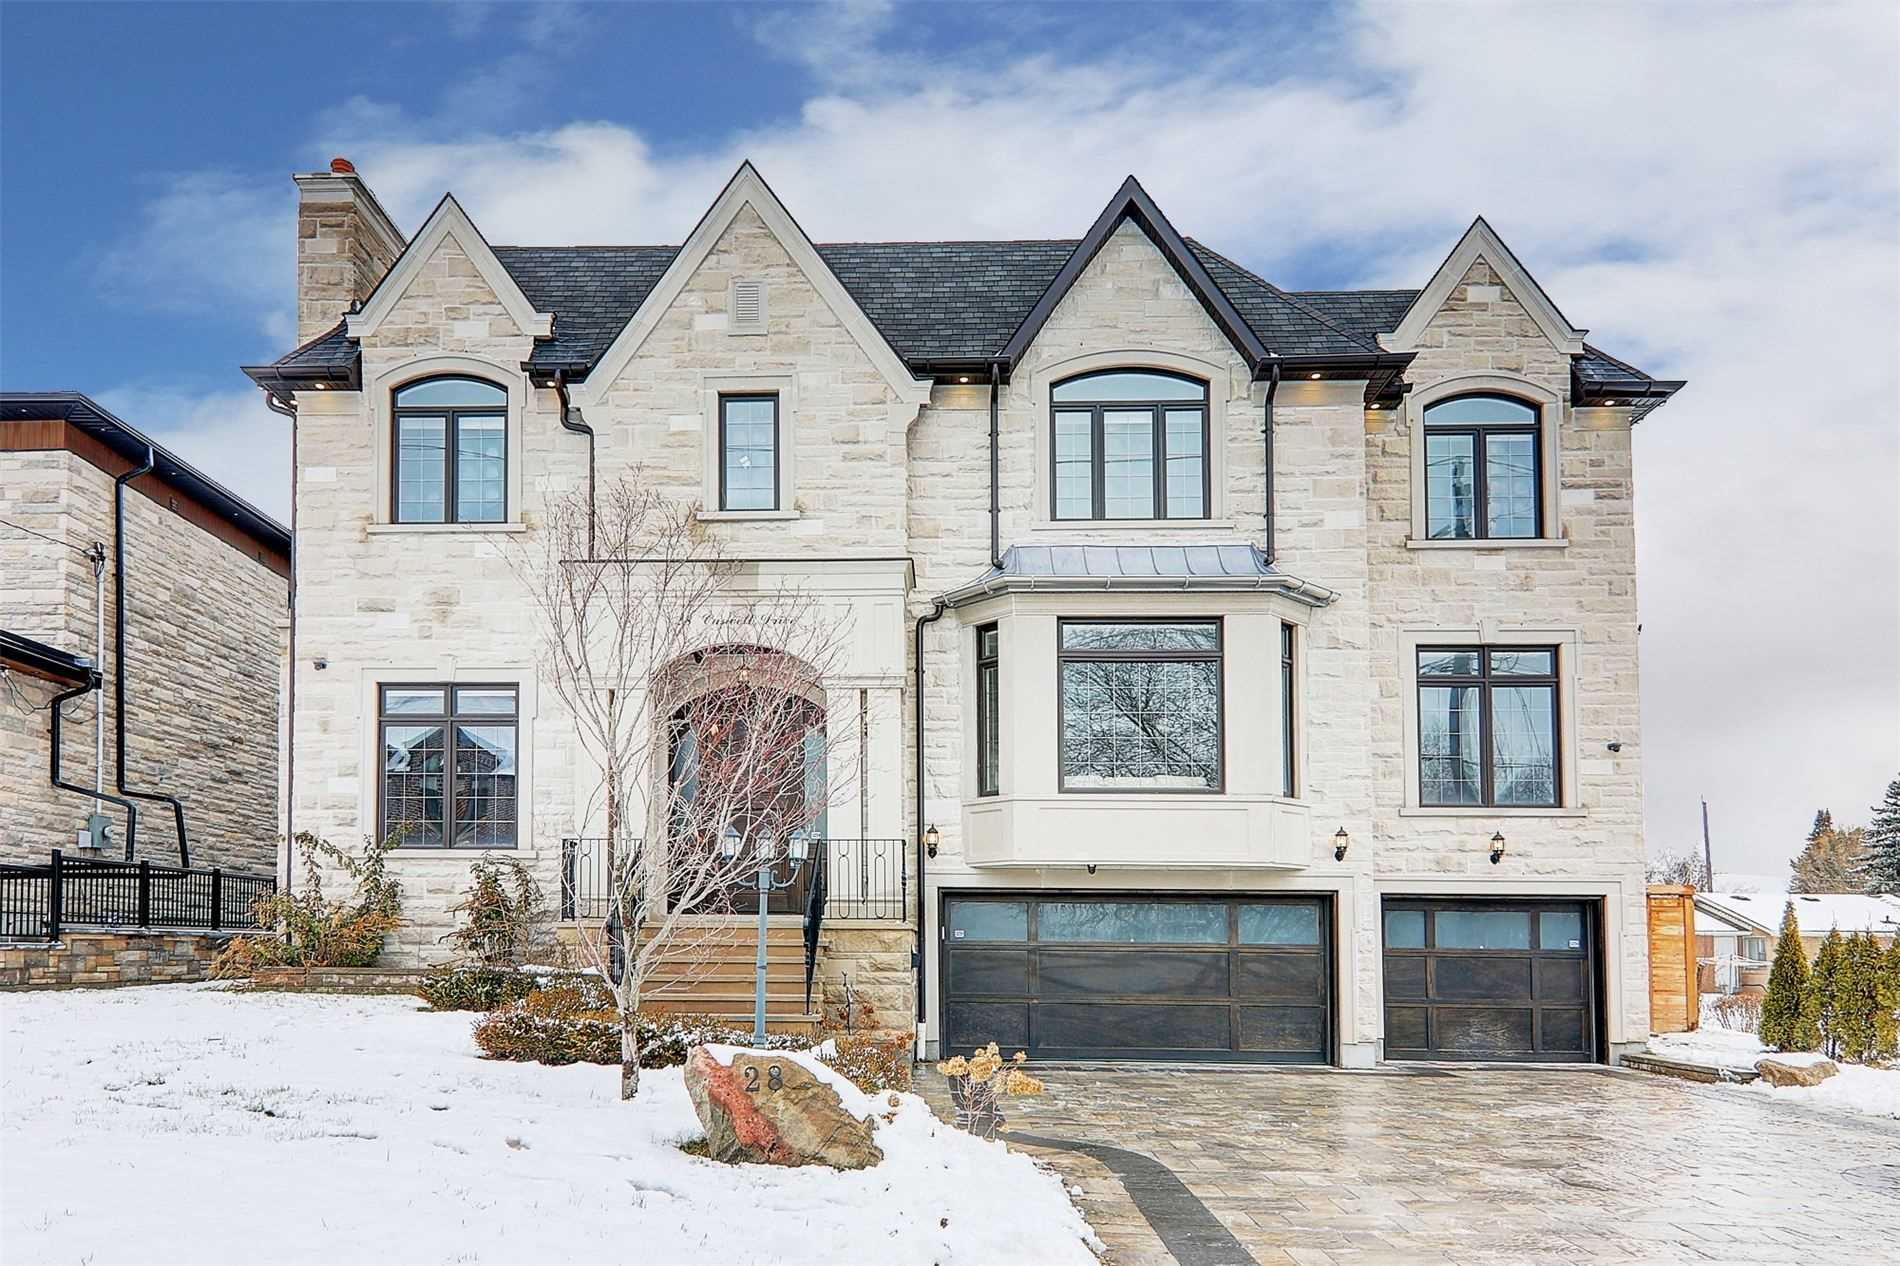 28 Caswell Dr, Toronto, Ontario M2M3L9, 4 Bedrooms Bedrooms, 11 Rooms Rooms,7 BathroomsBathrooms,Detached,For Sale,Caswell,C5075921